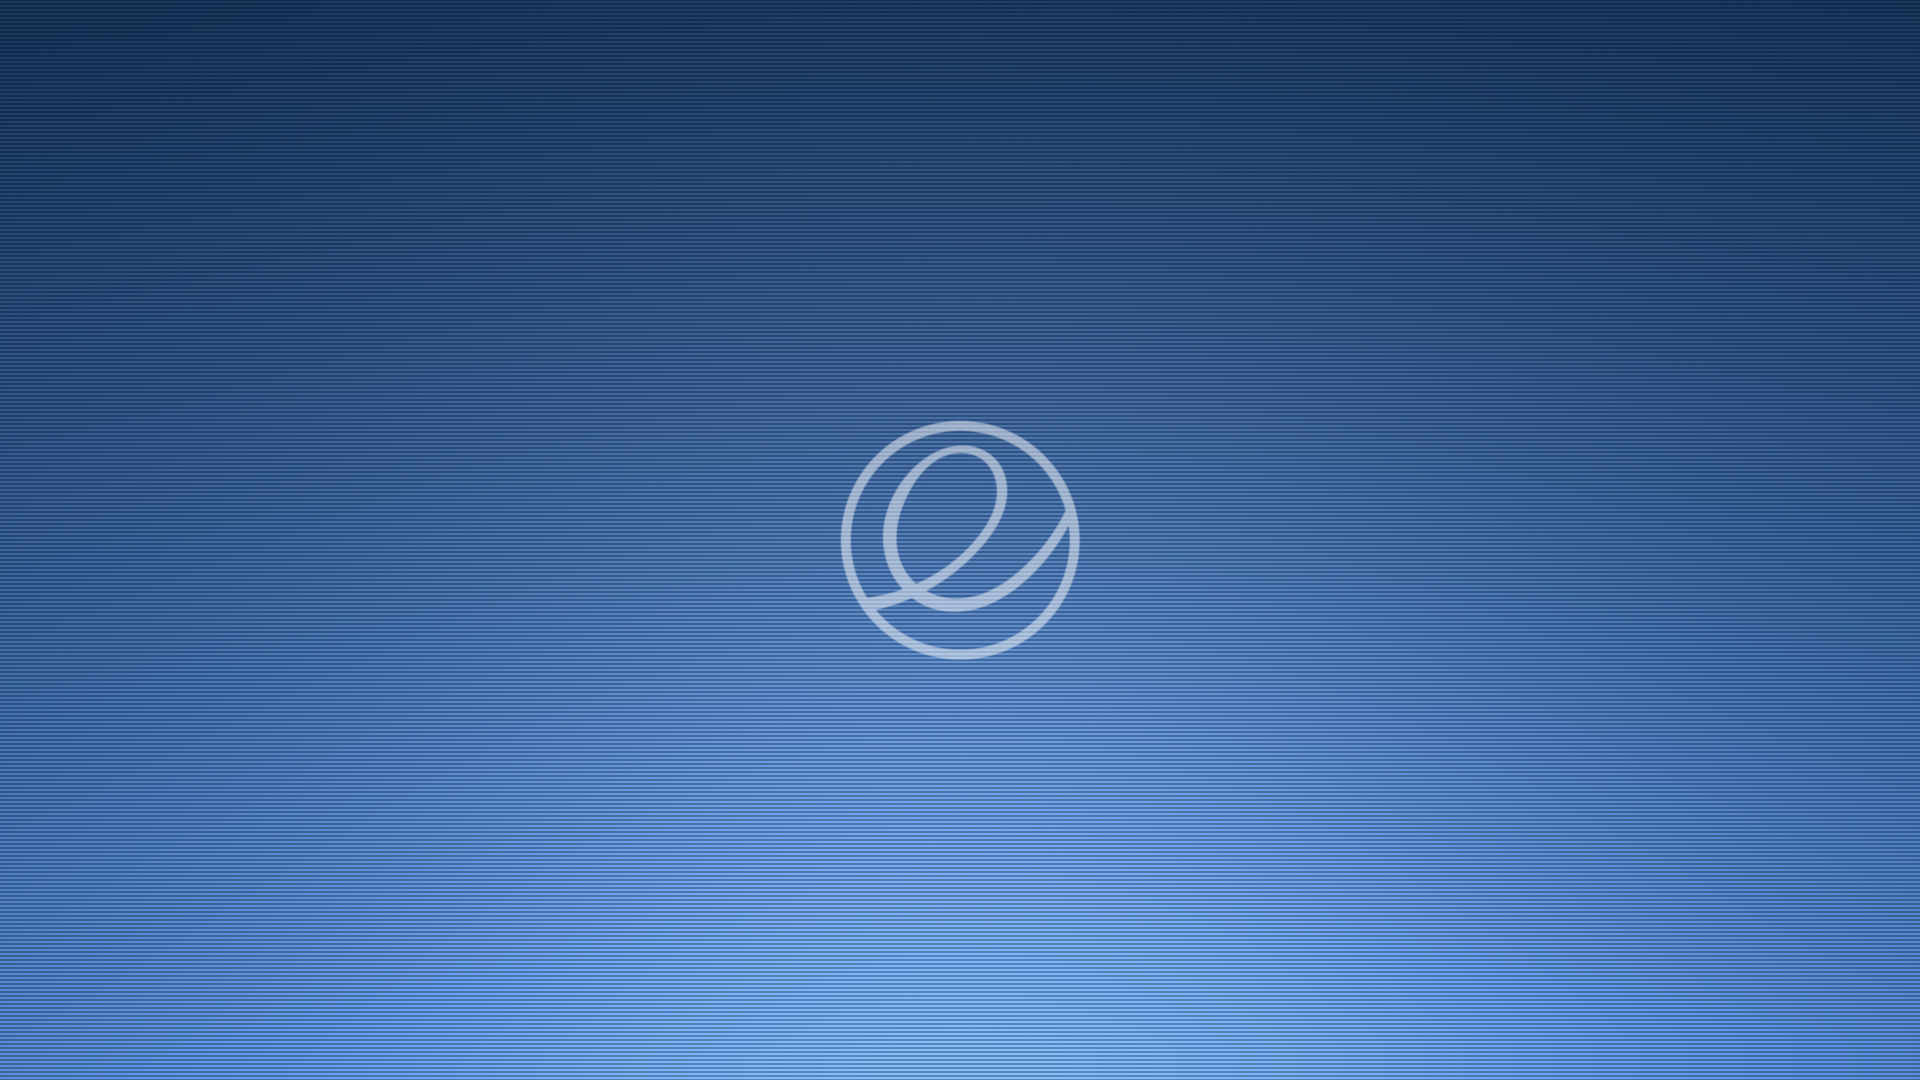 Elementary OS Wallpapers Ubuntronics 15png 1920x1080